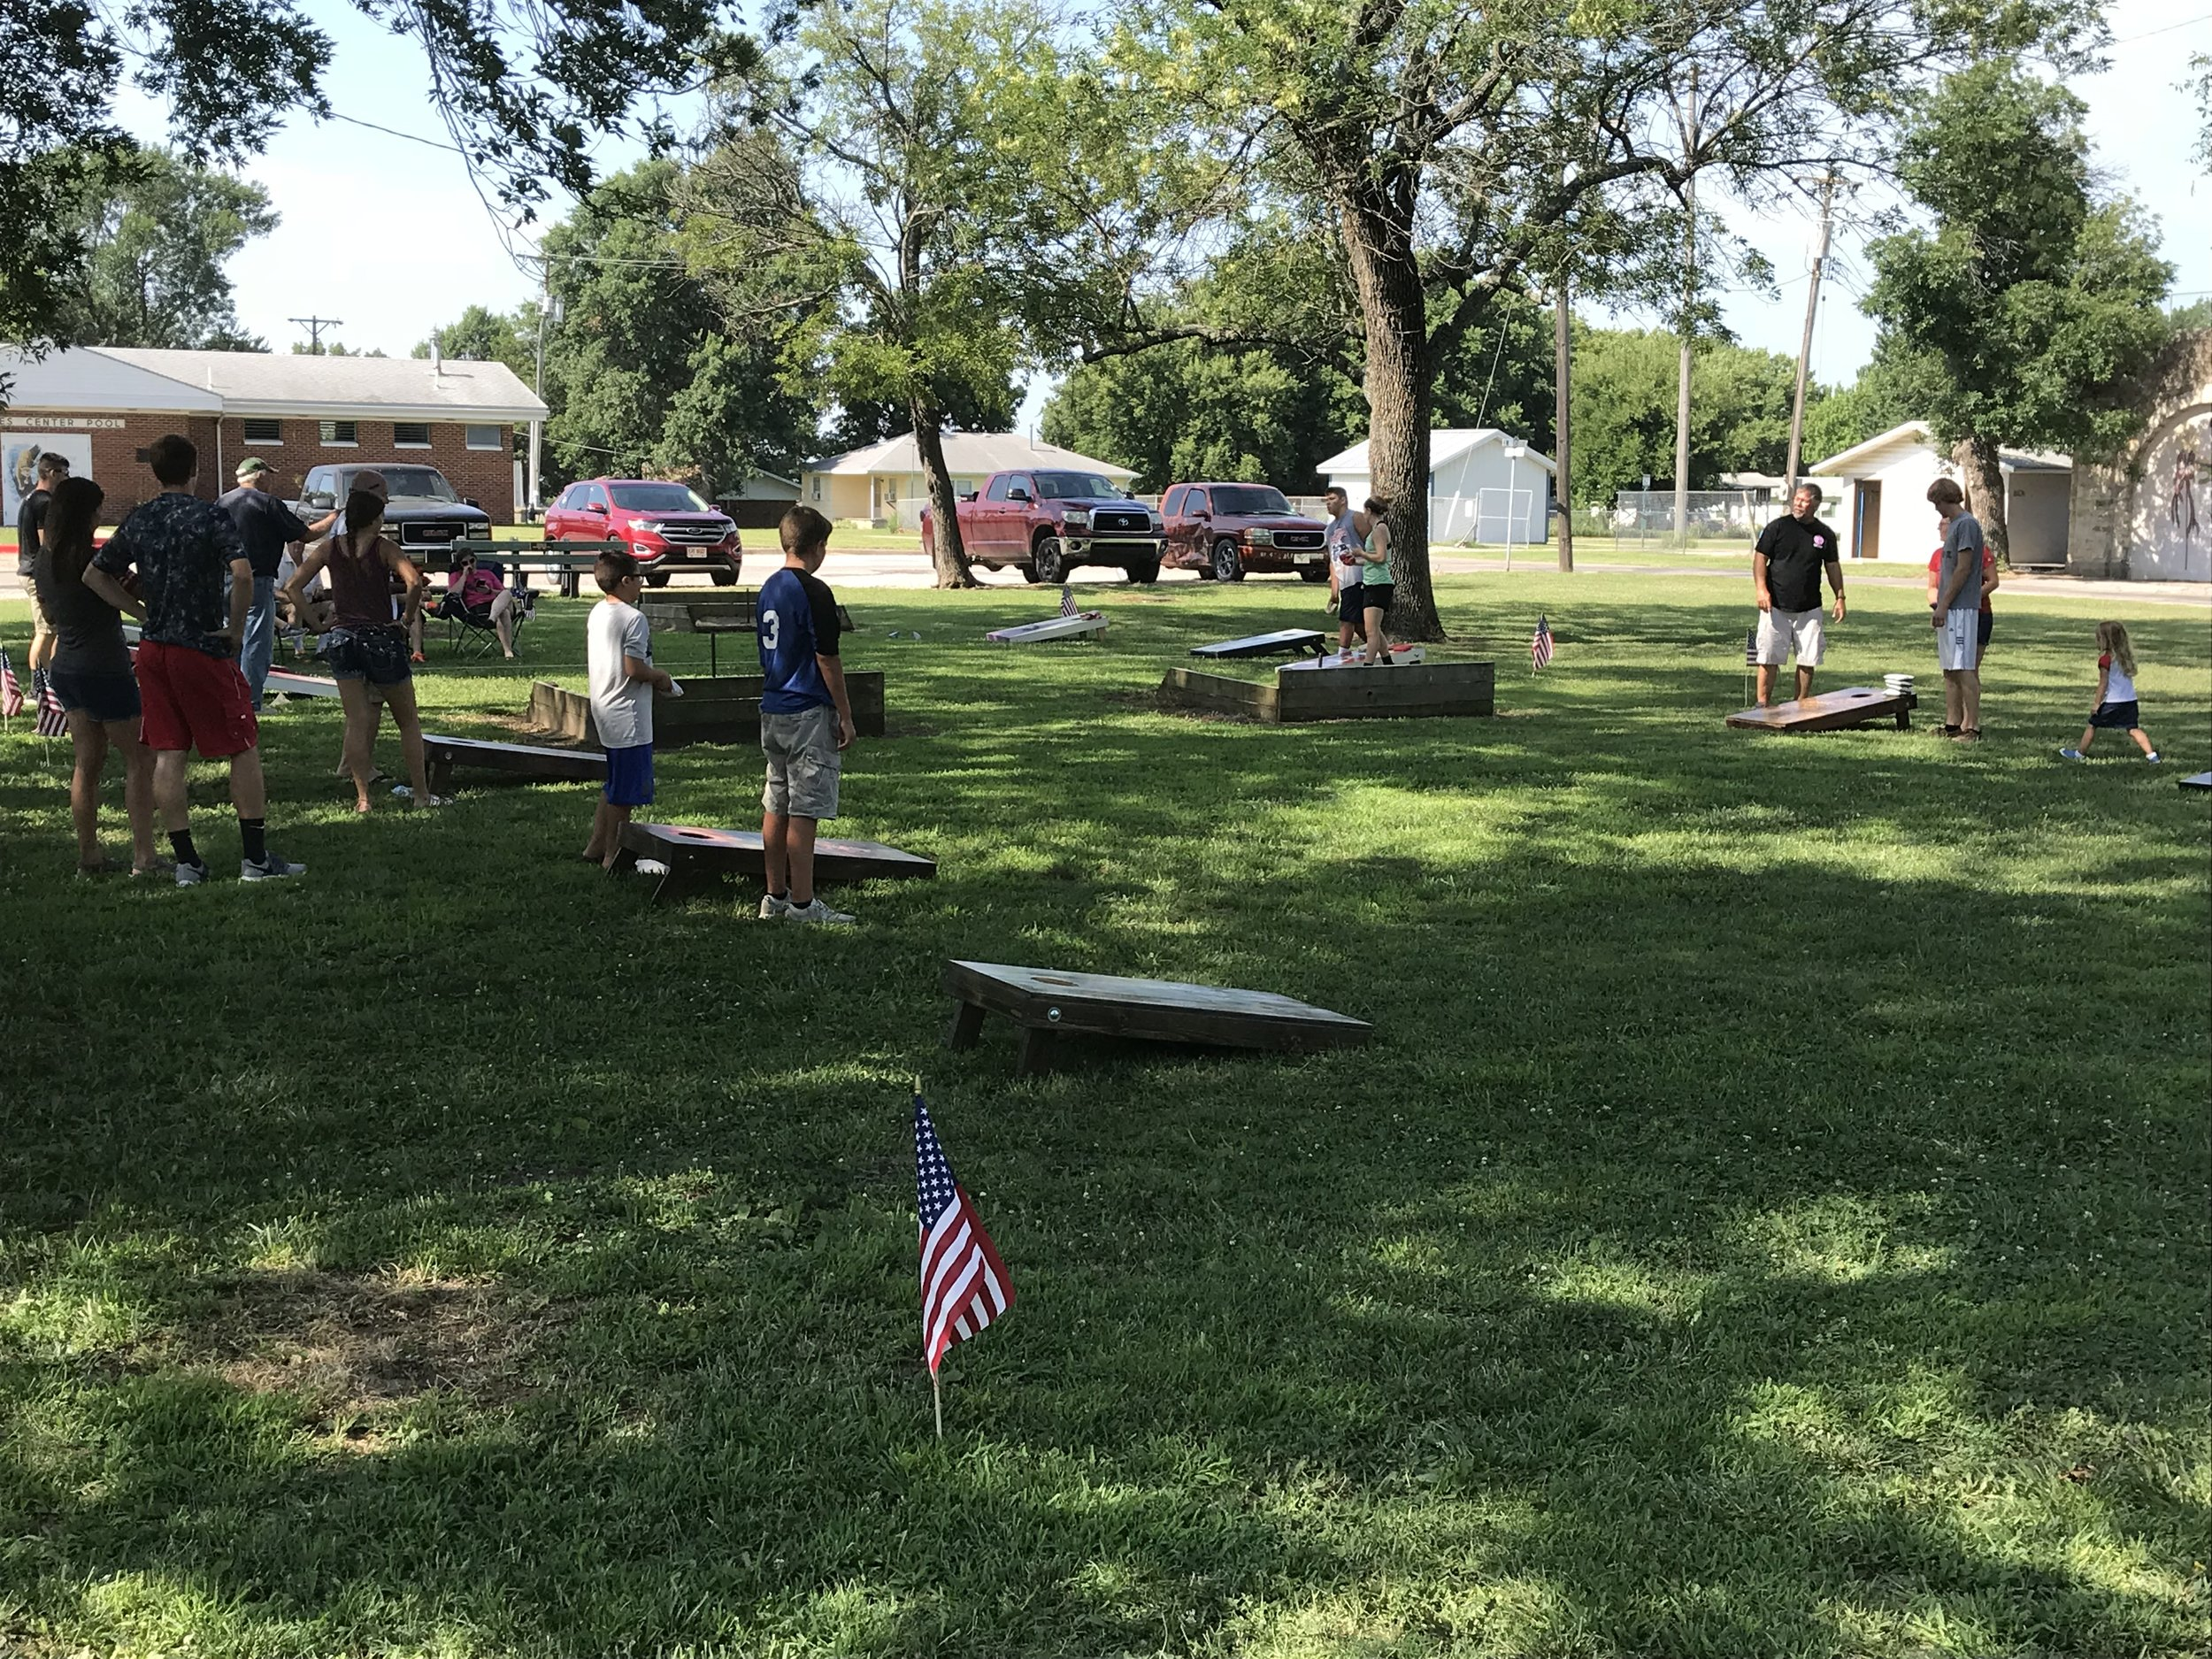 The cornhole tournament after the biscuits & gravy breakfast.  We didn't participate- we needed to get on the road.